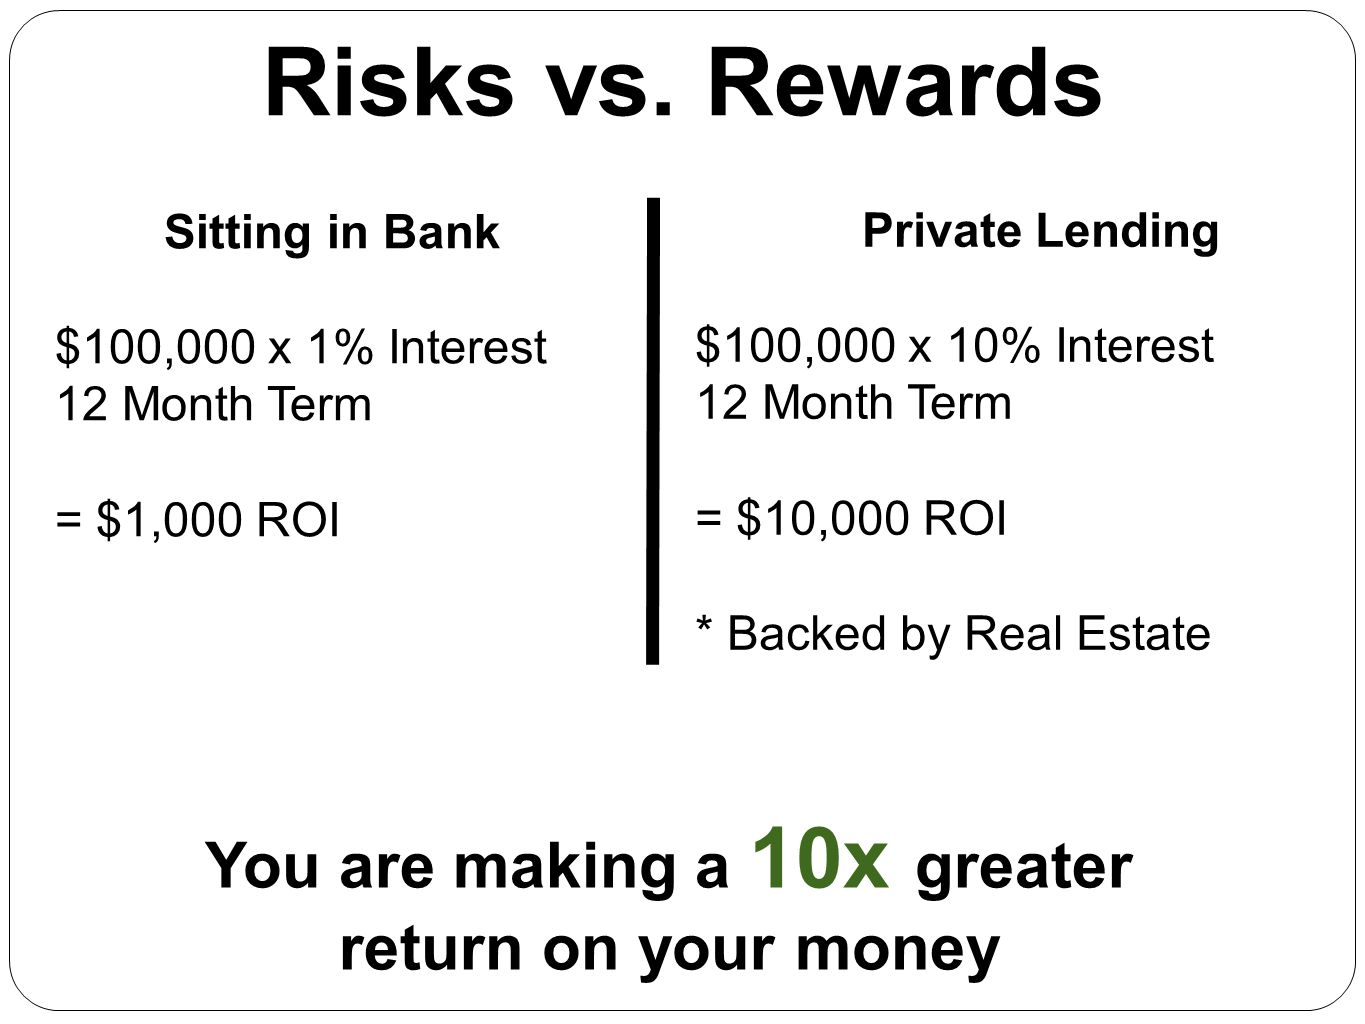 You are making a 10x greater return on your money